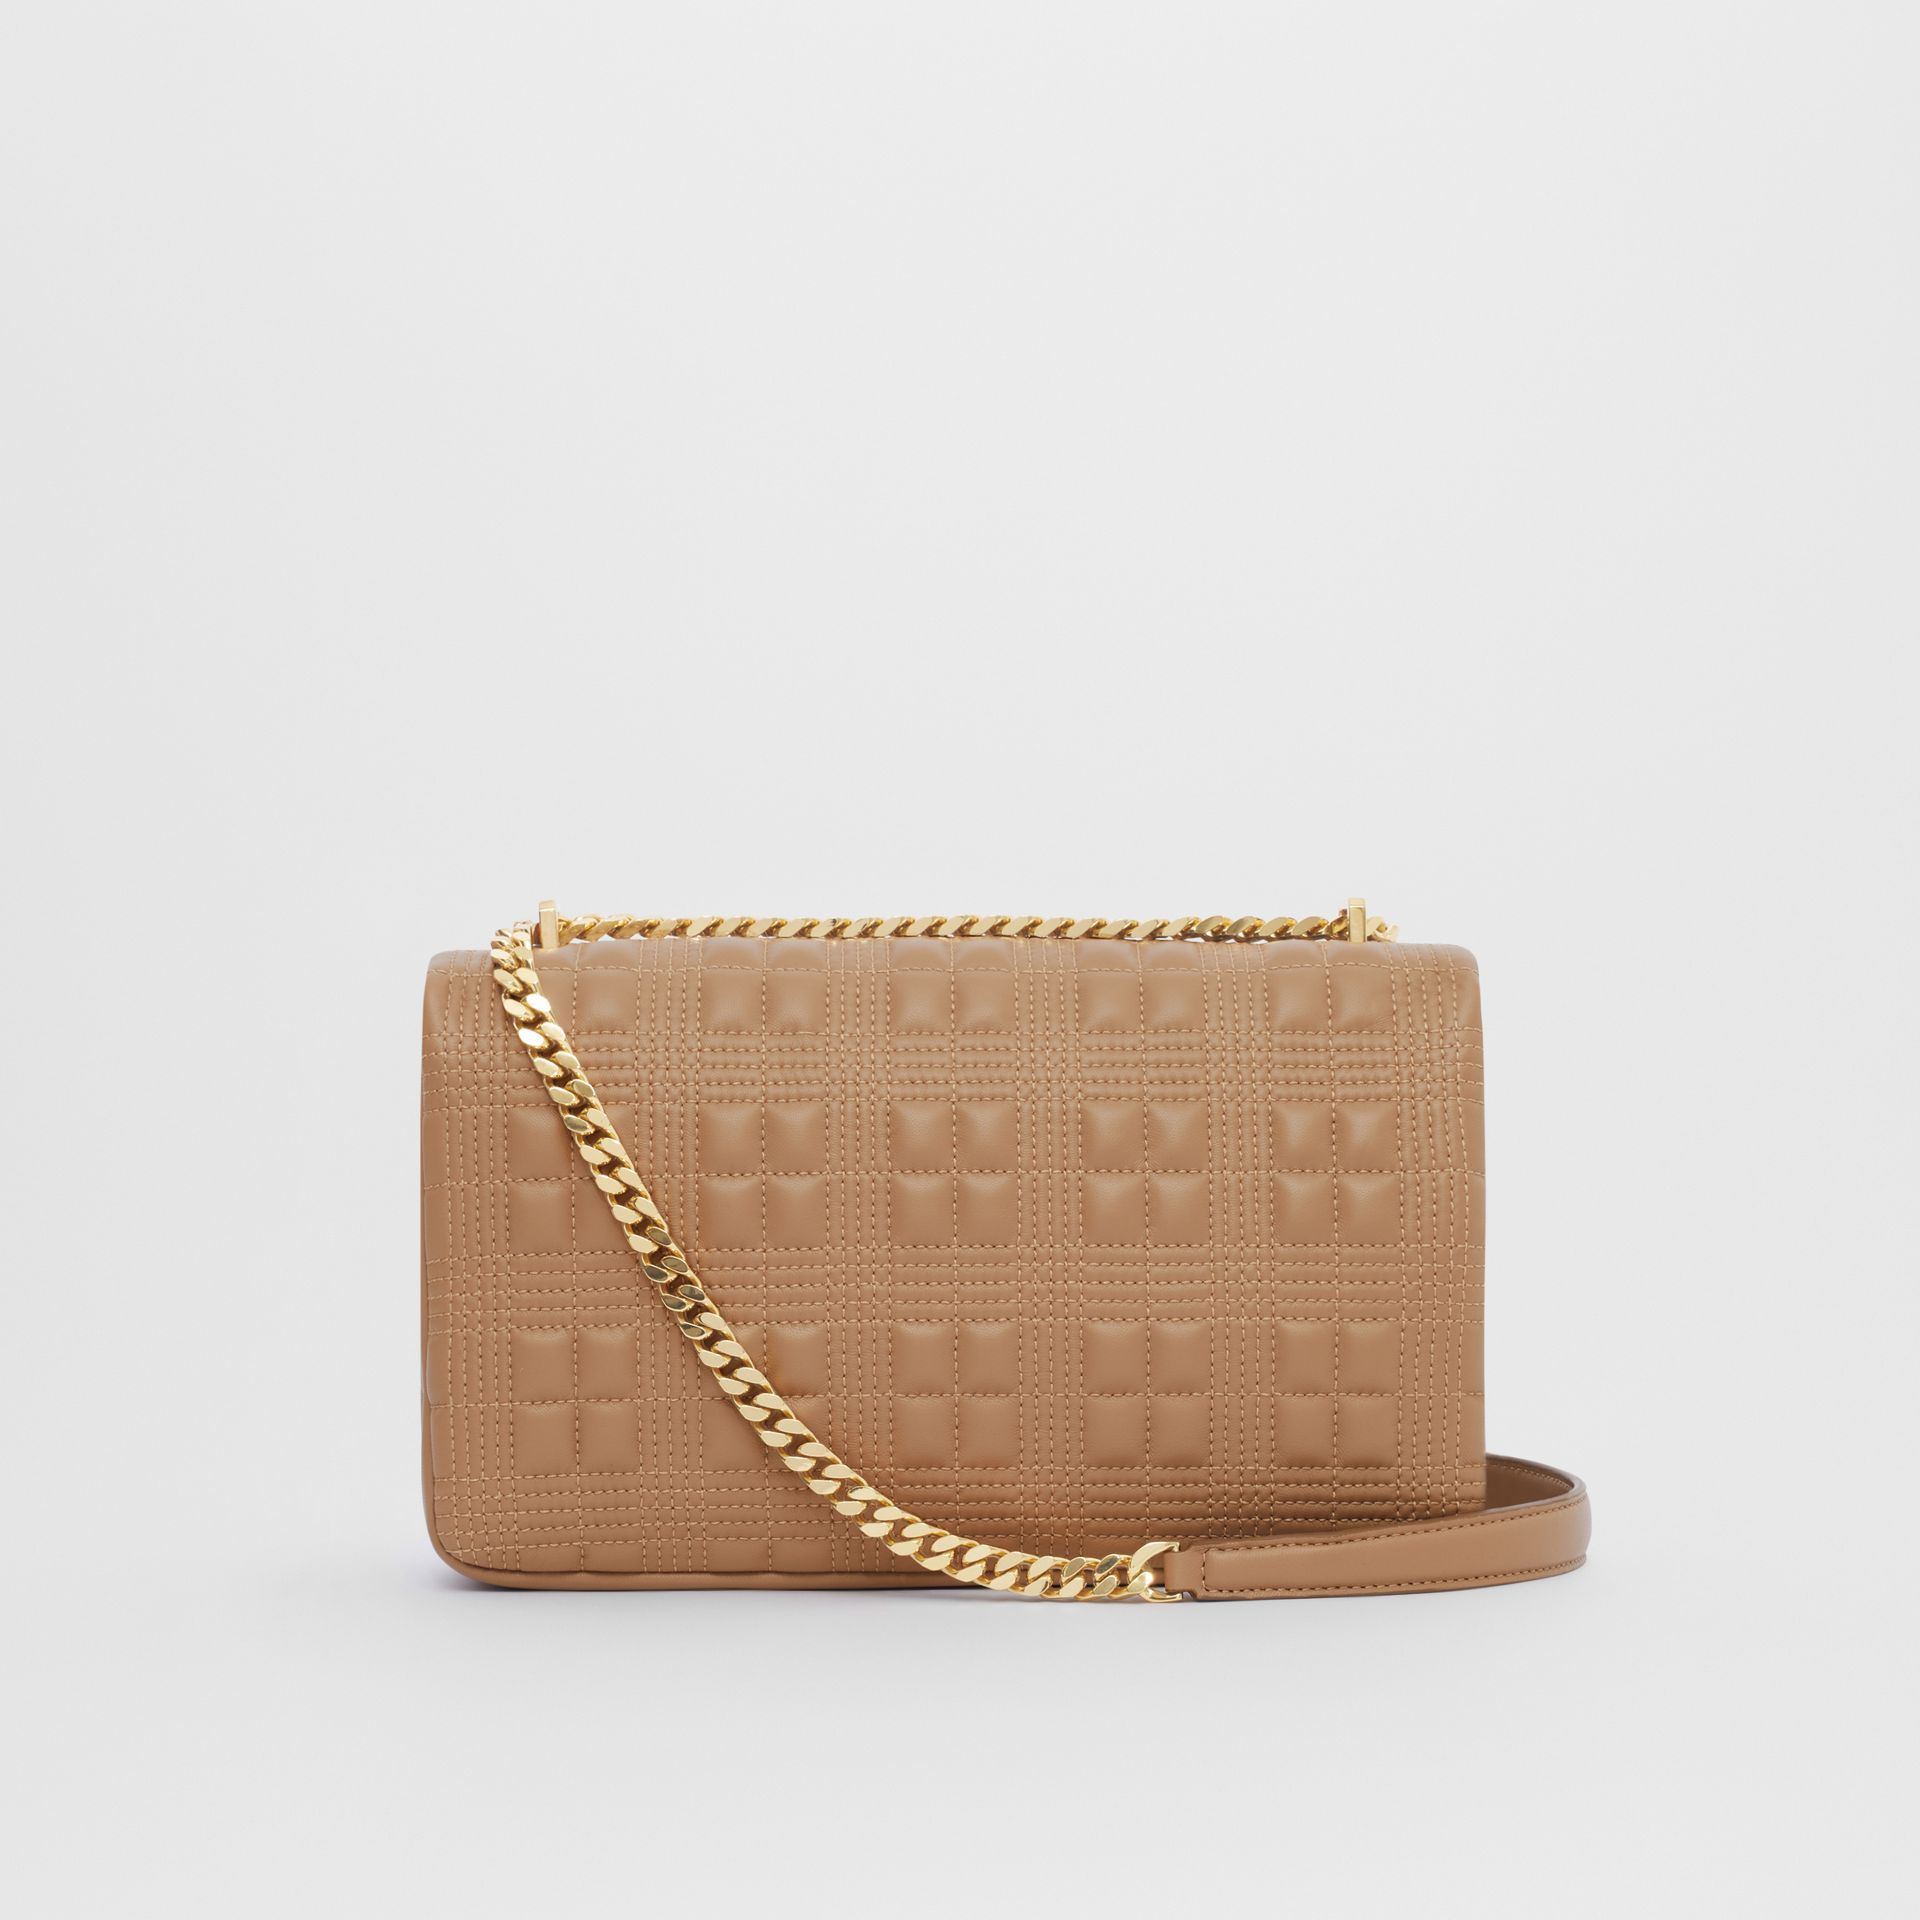 Medium Quilted Lambskin Lola Bag in Camel - Women | Burberry United Kingdom - gallery image 7